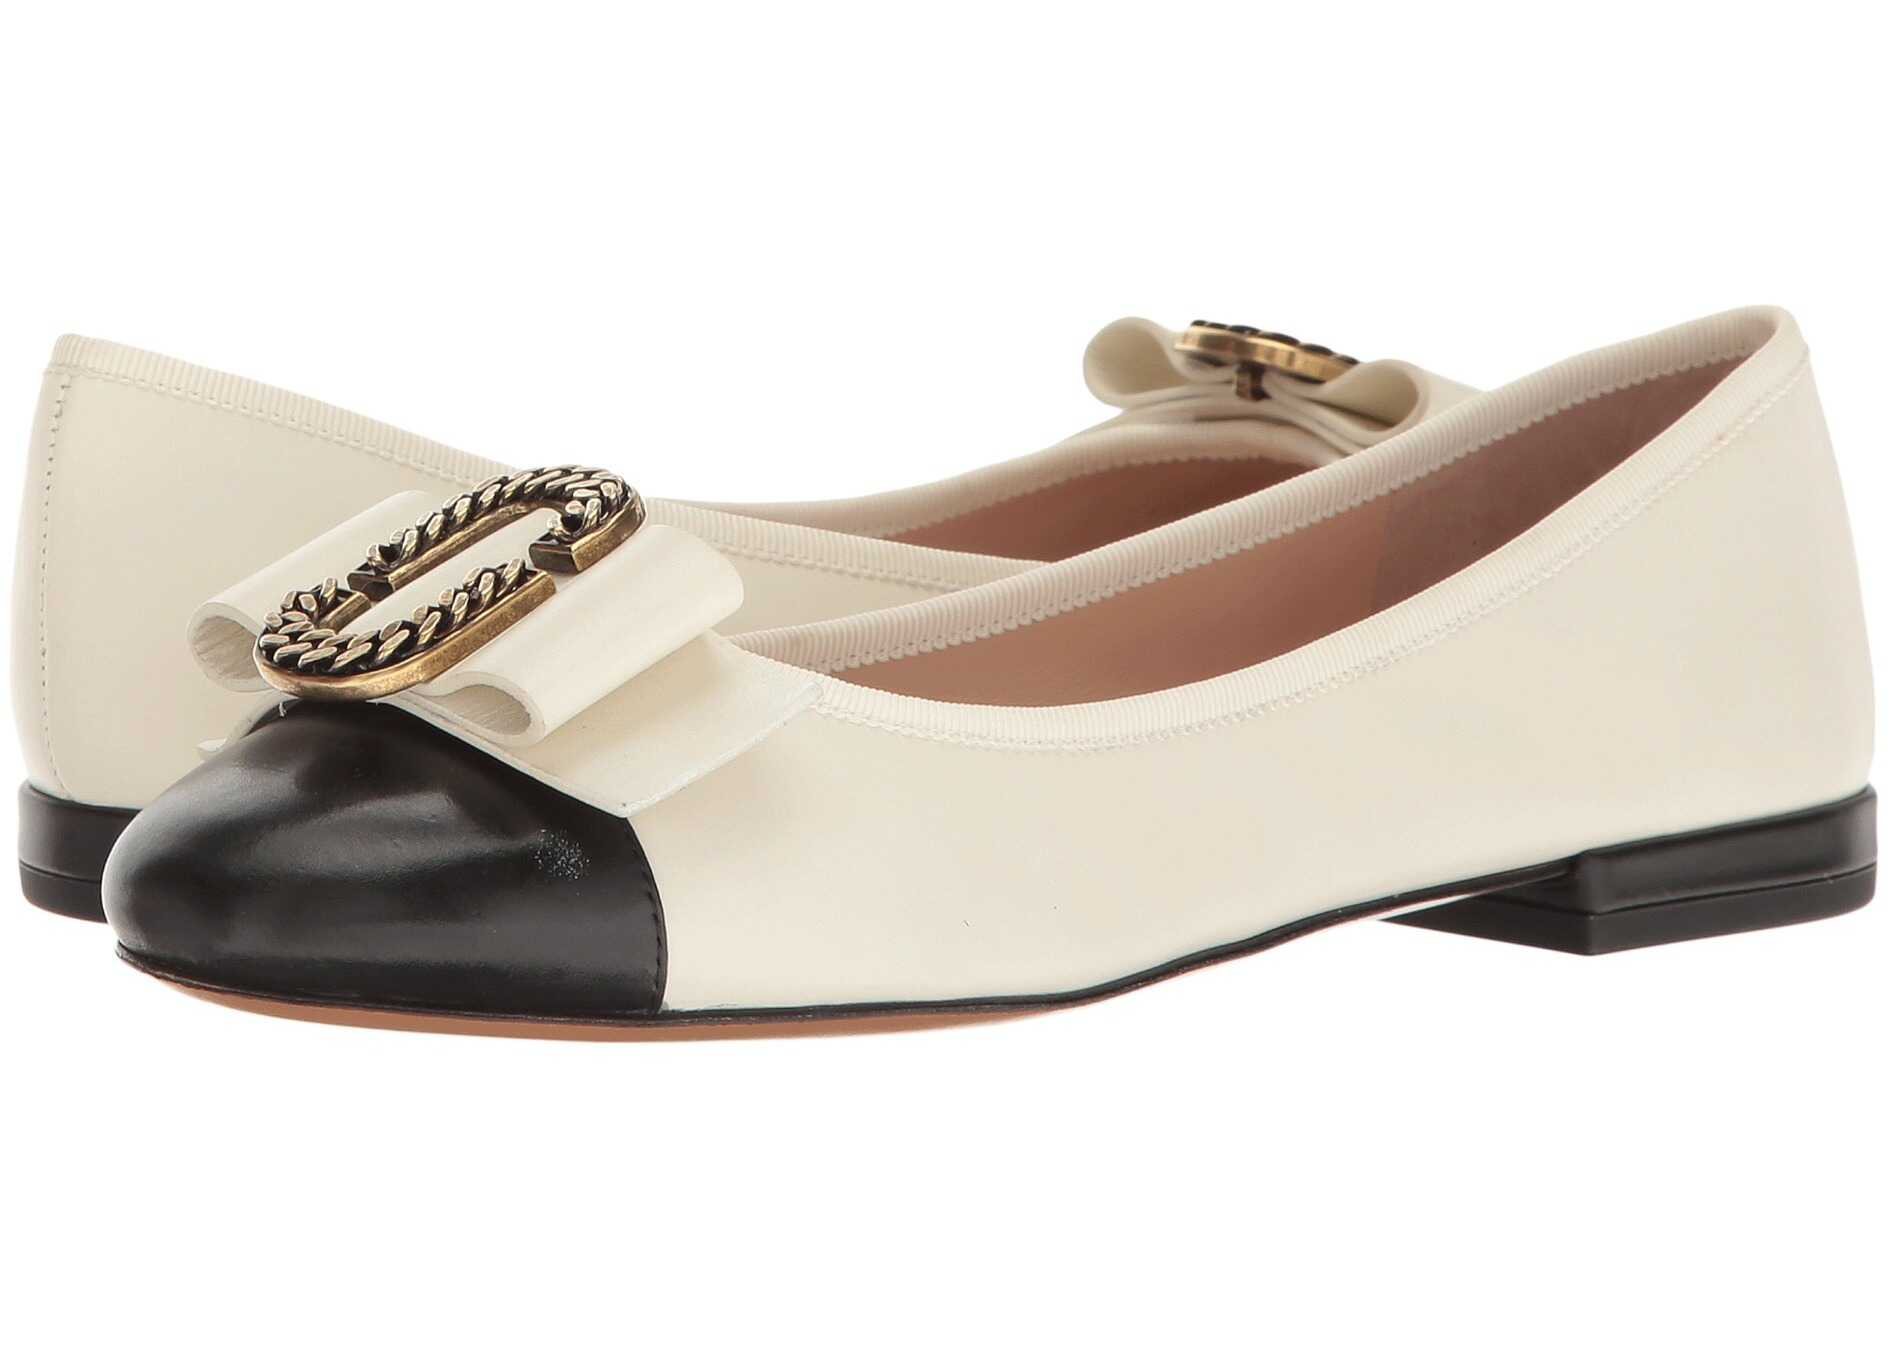 Marc Jacobs Interlock Round Toe Ballerina Ivory/Black